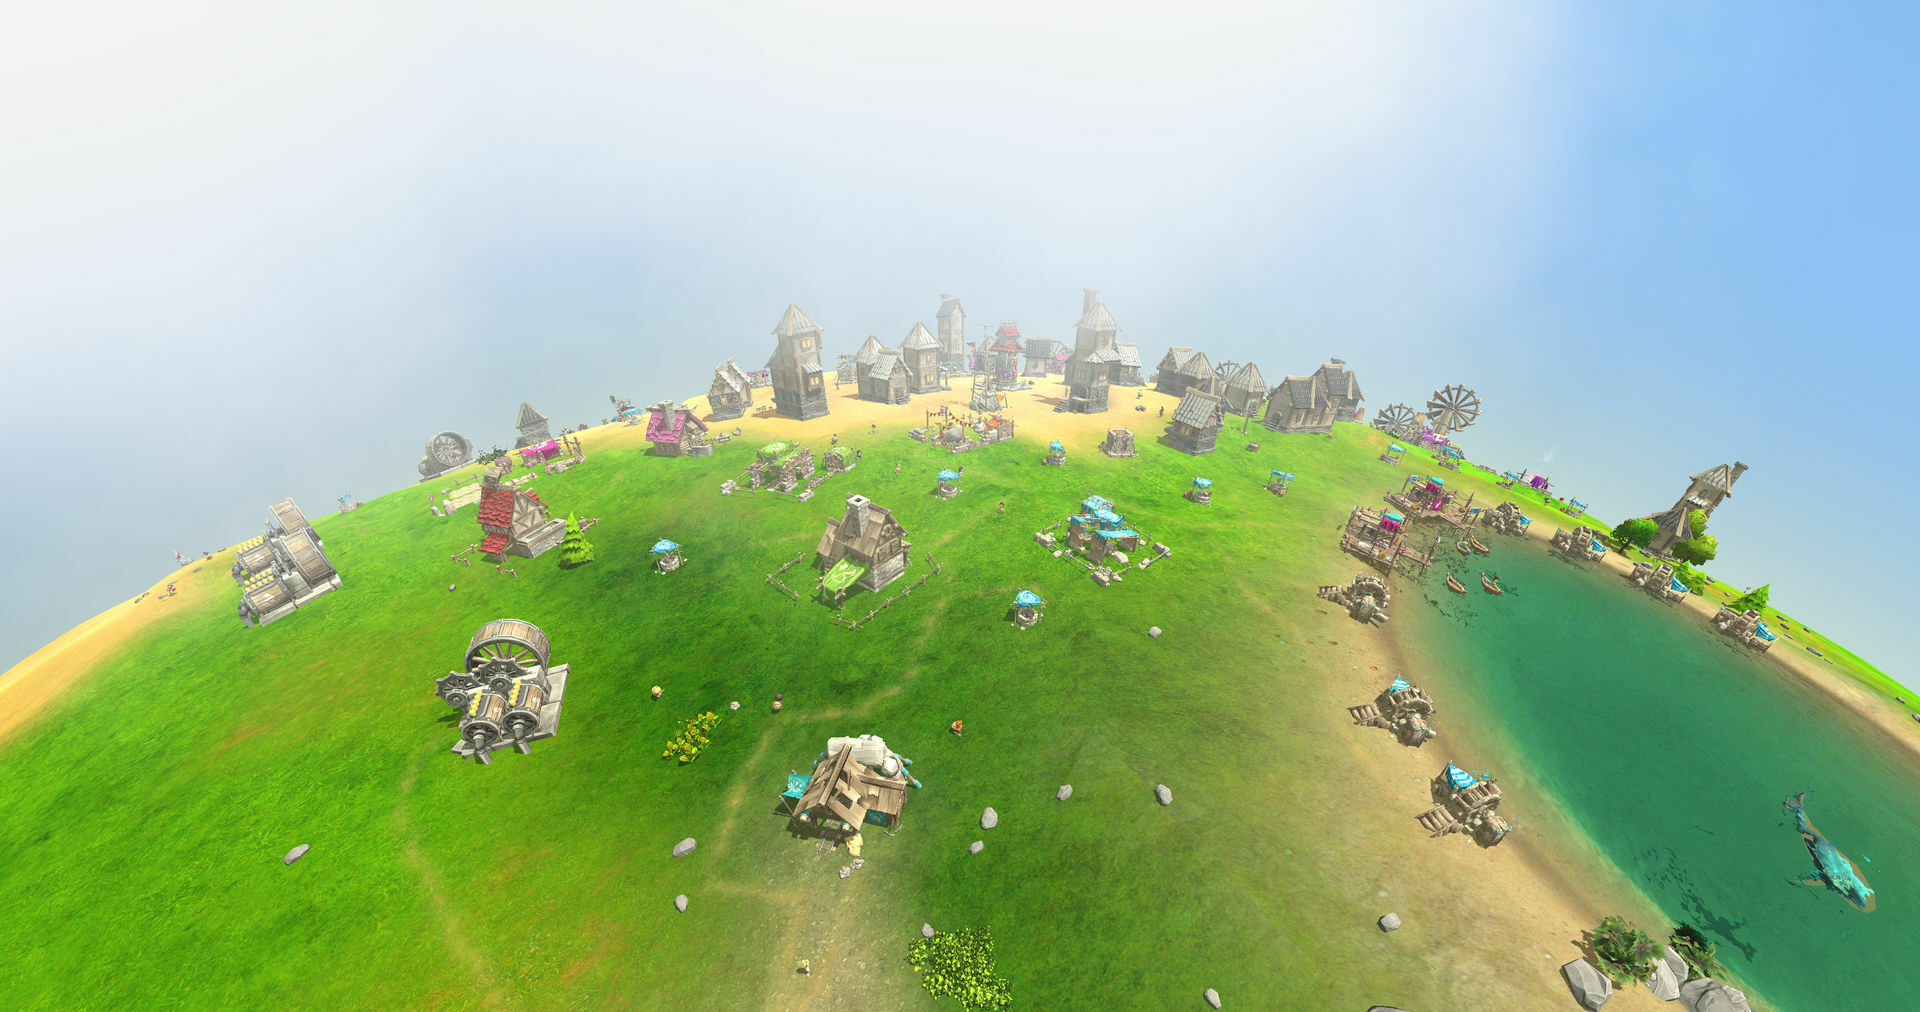 The Universim screenshot 3